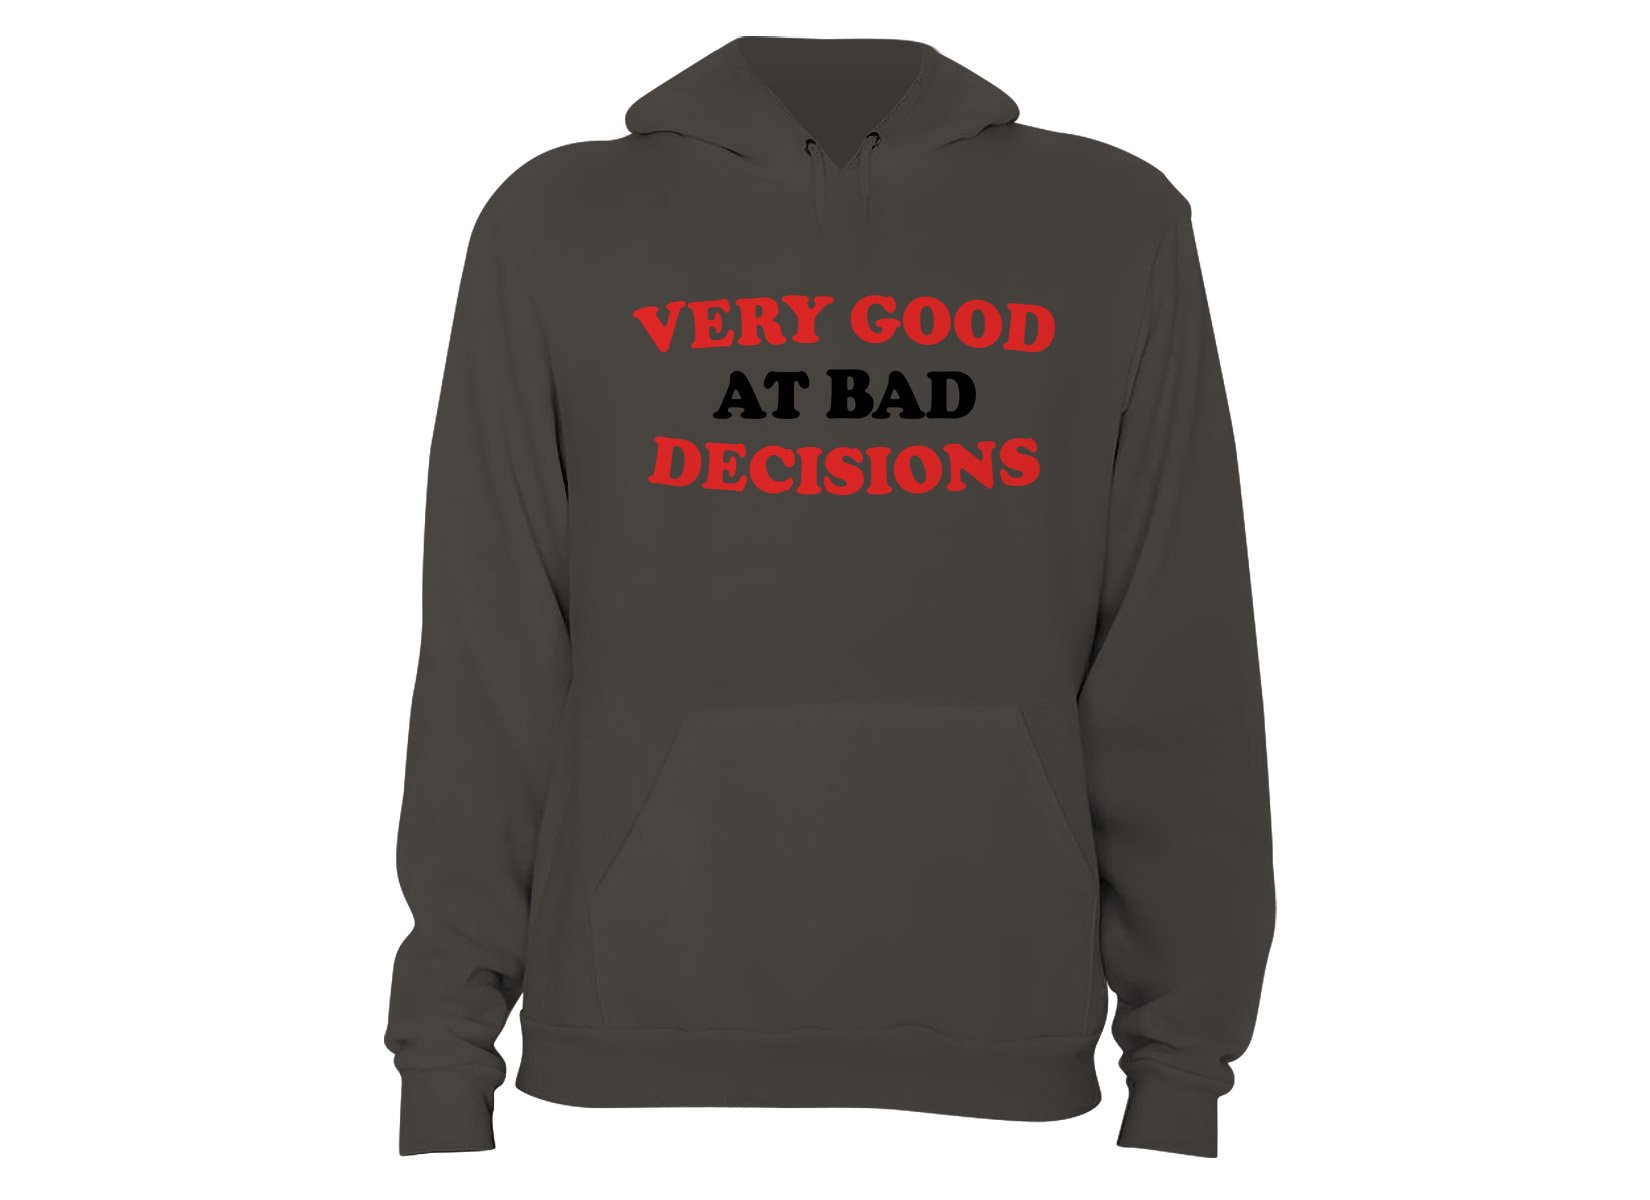 Very Good At Bad Decisions on Hoodie